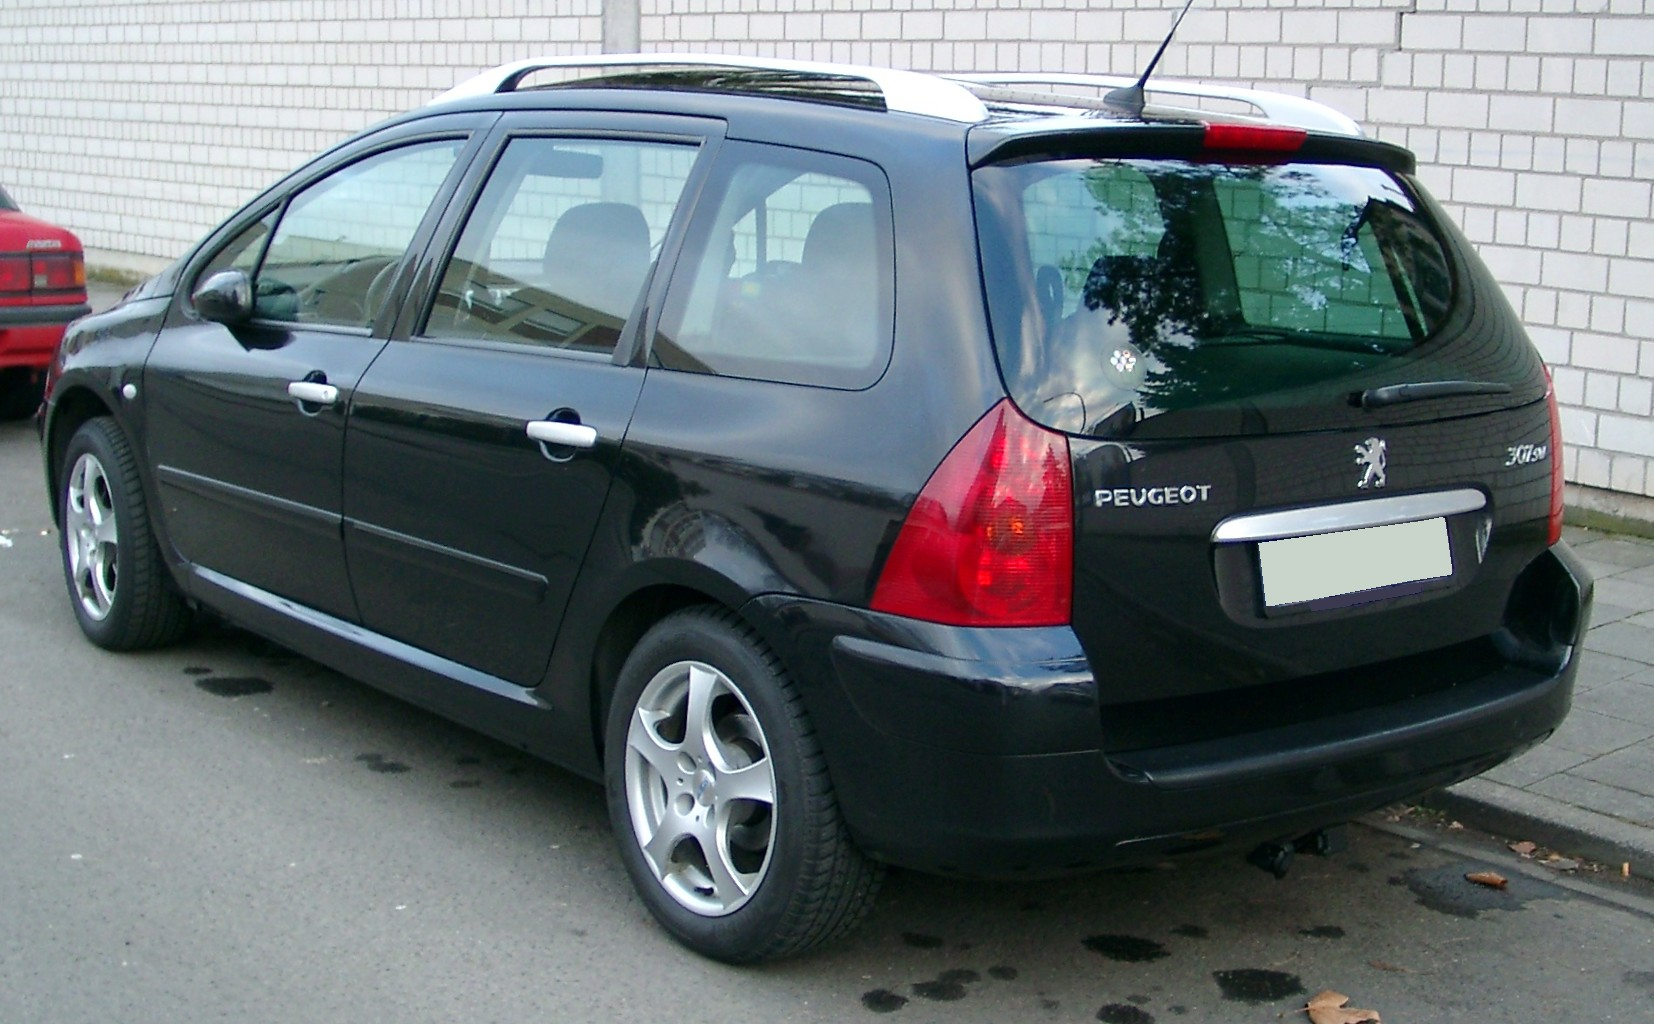 peugeot 307 station wagon 2012 pictures